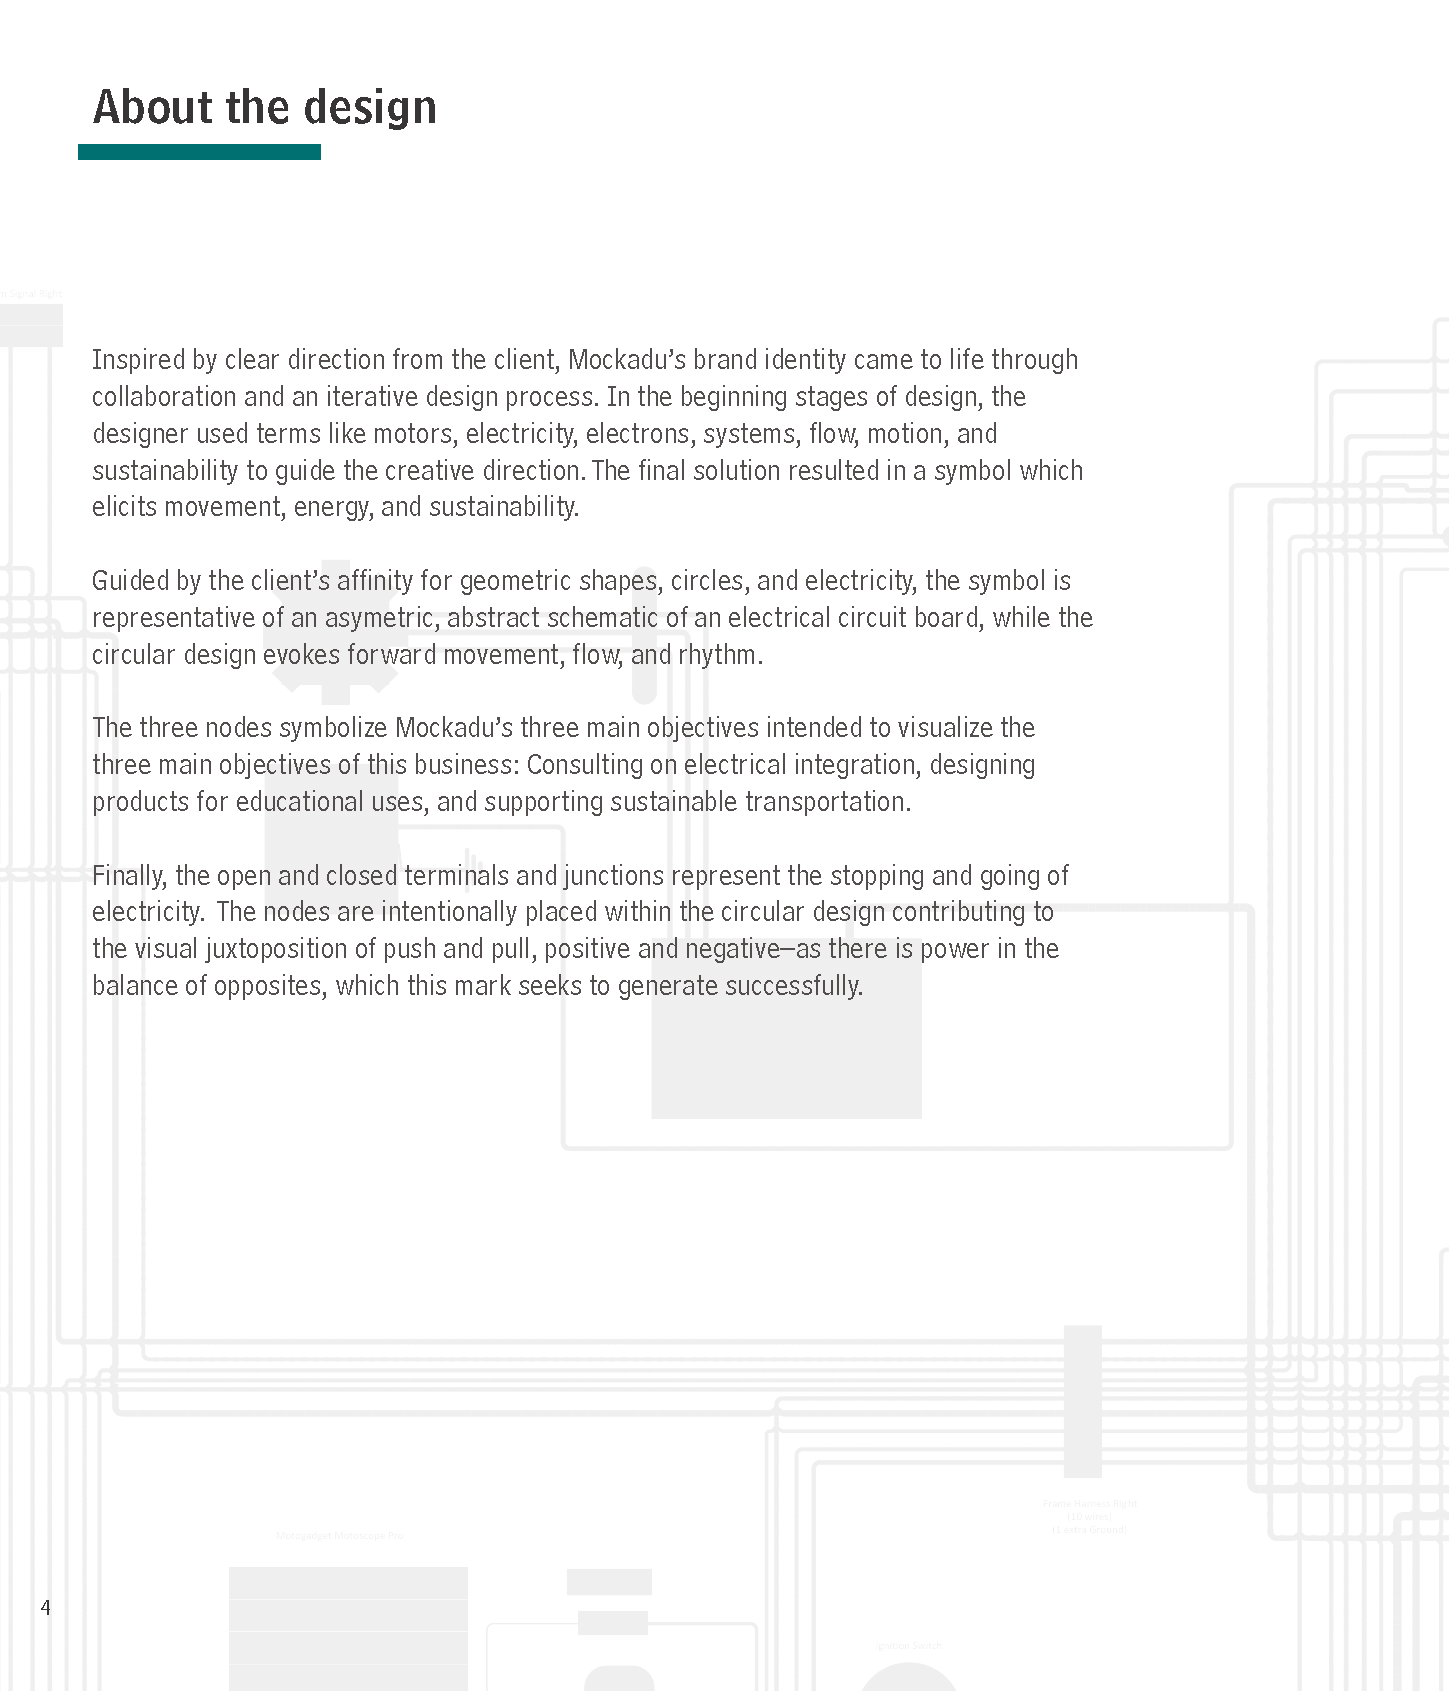 StyleGuide_Page_04.png